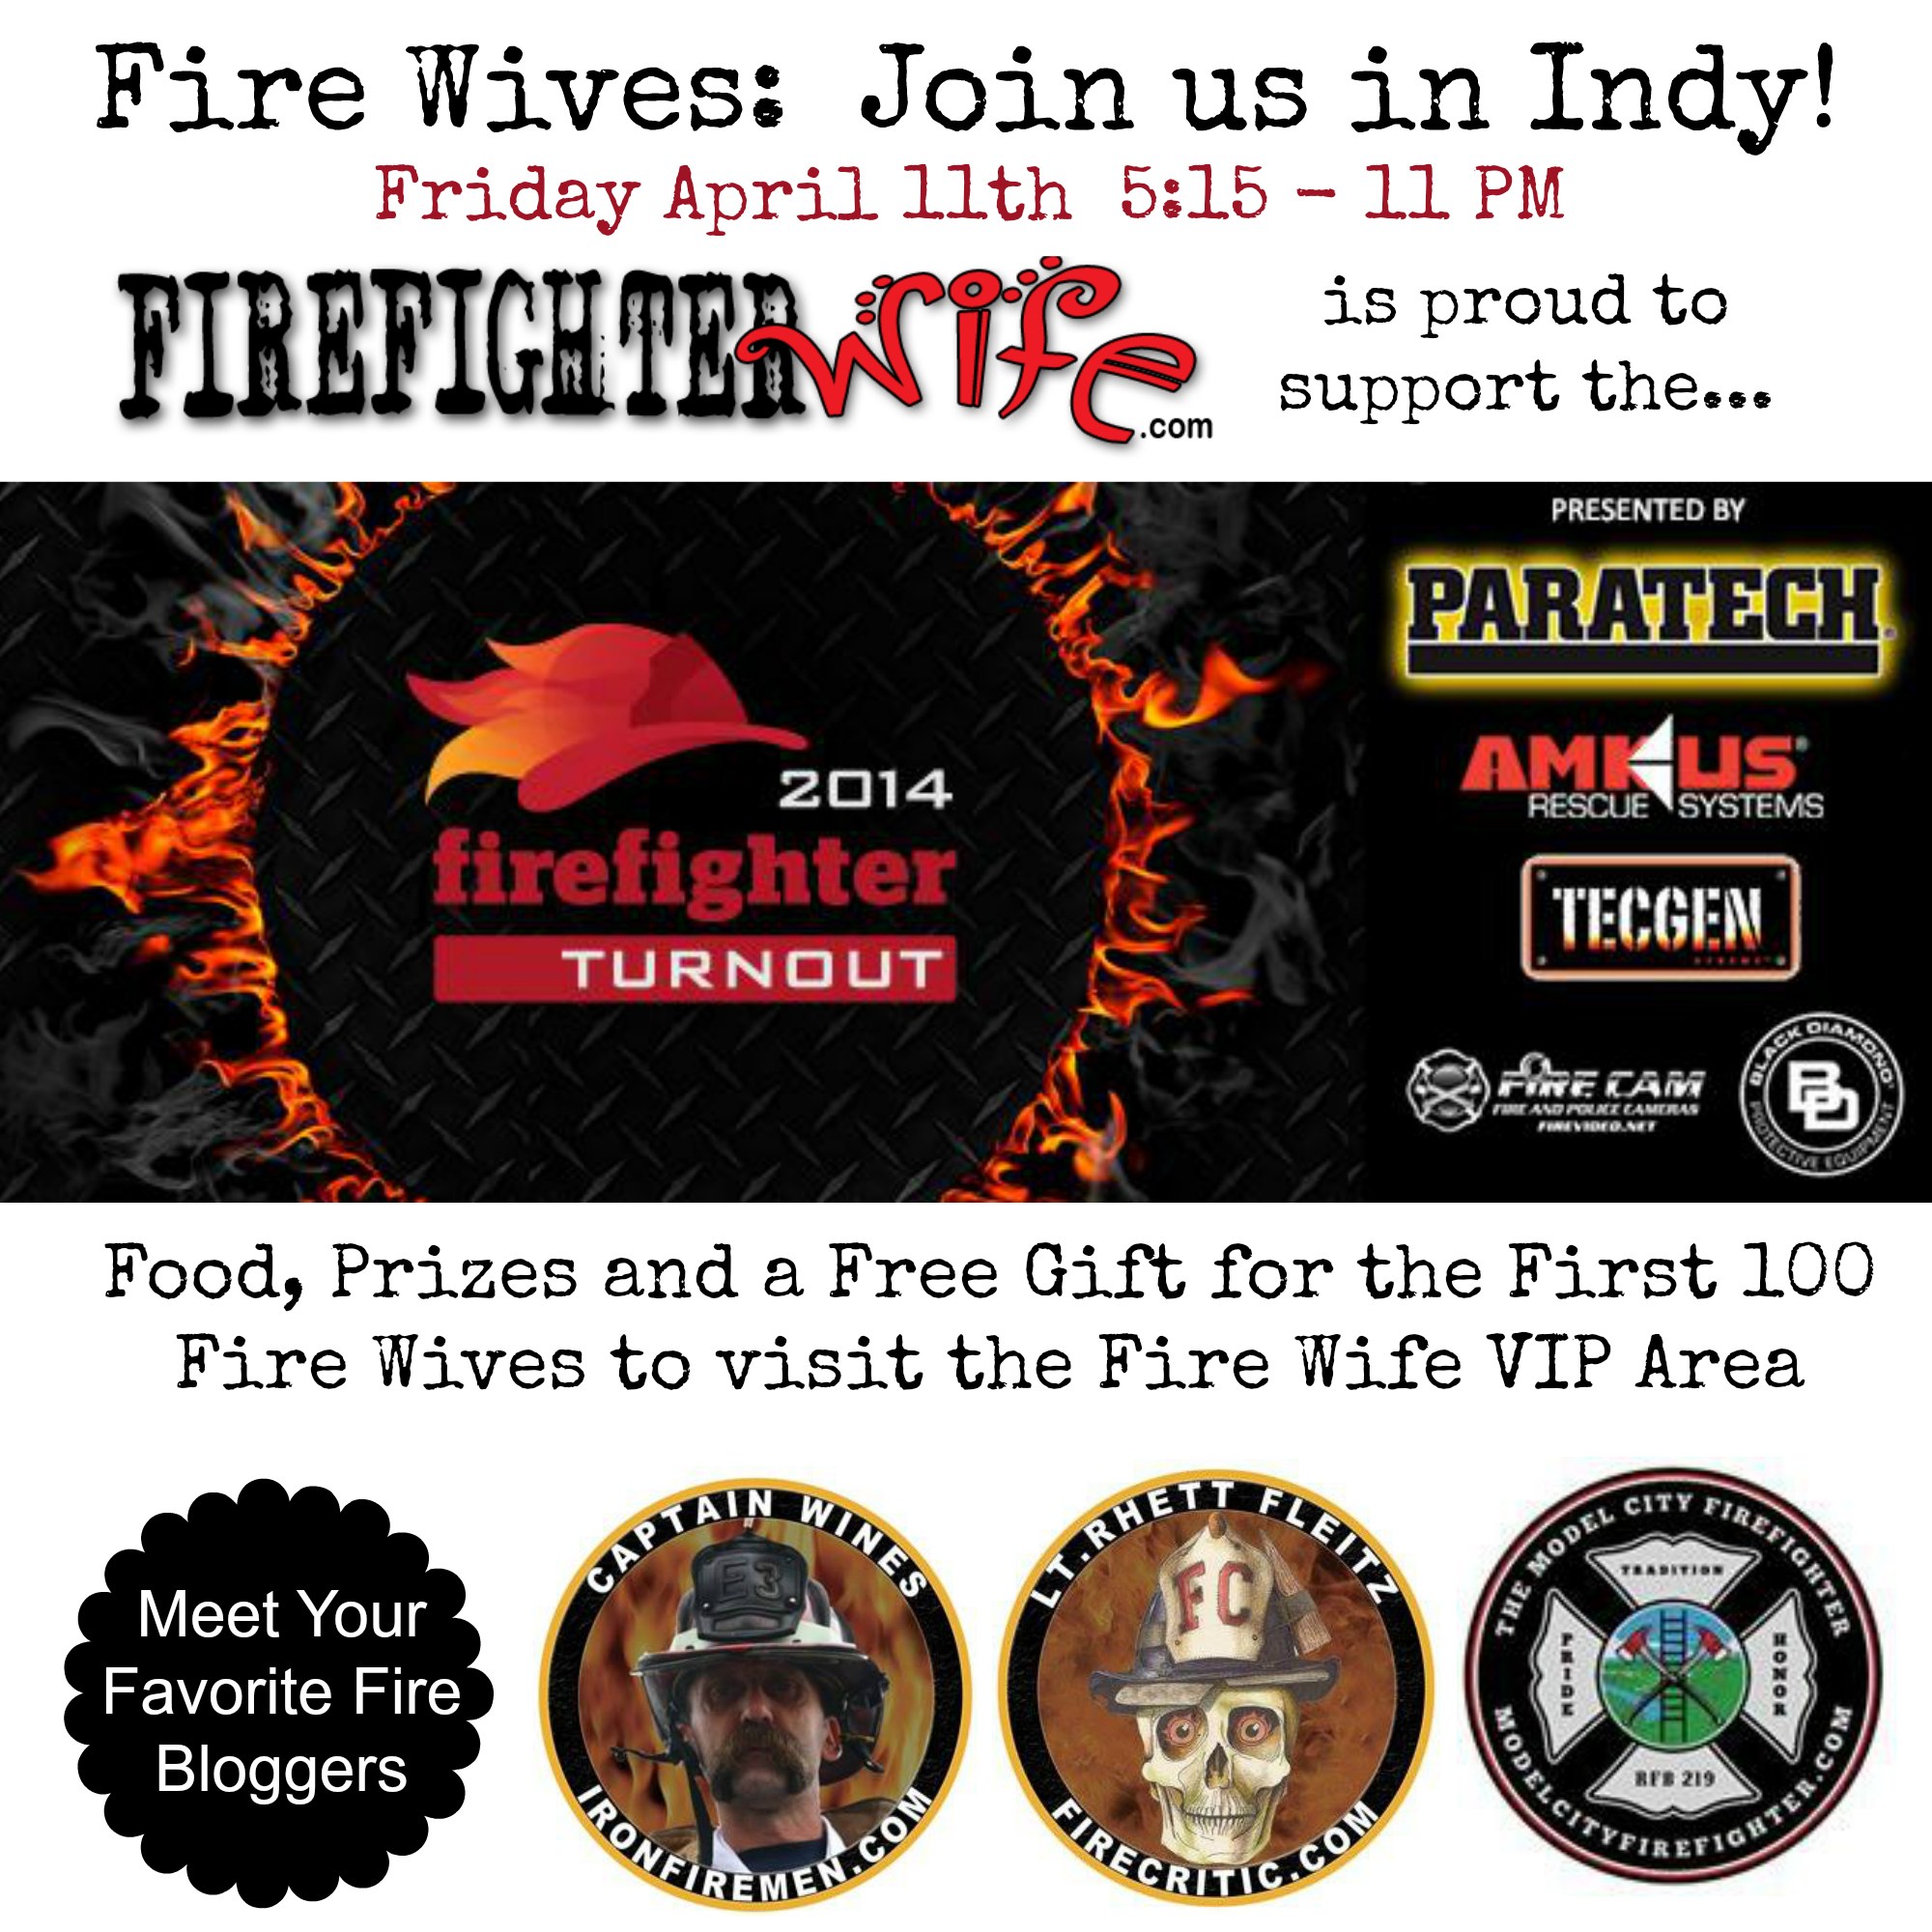 Fire Wives Meet Us in Indy!